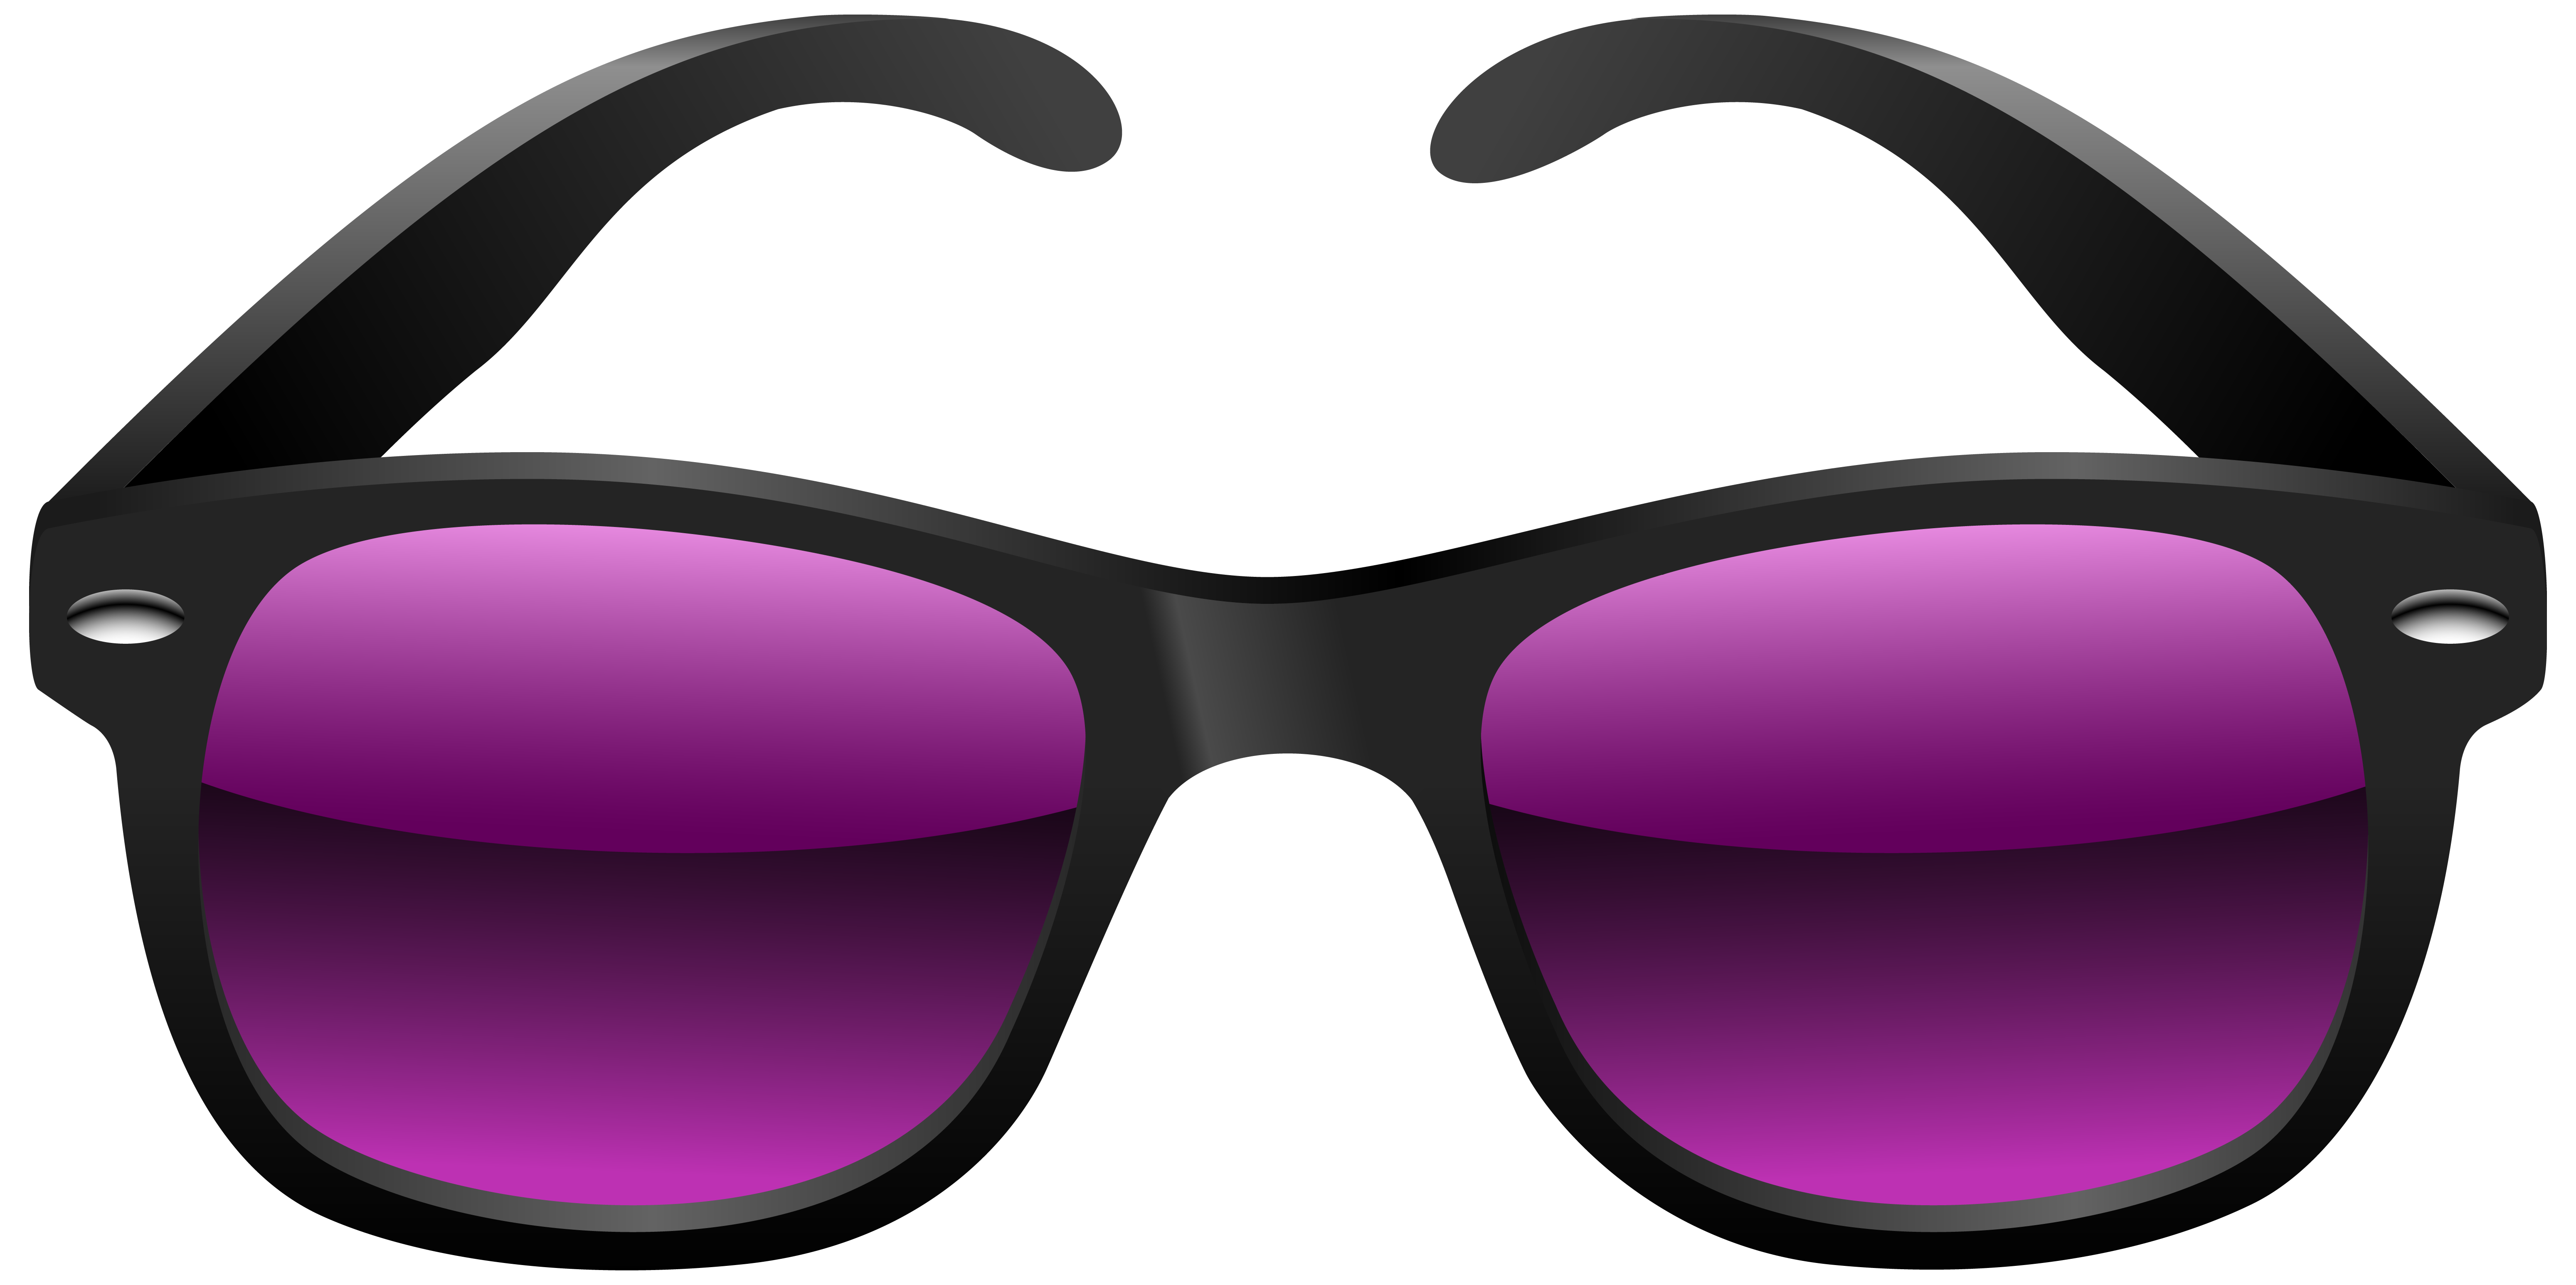 black and purple sunglasses clipart image fonts water beach sun rh pinterest com clipart eyeglasses sunglasses free clipart